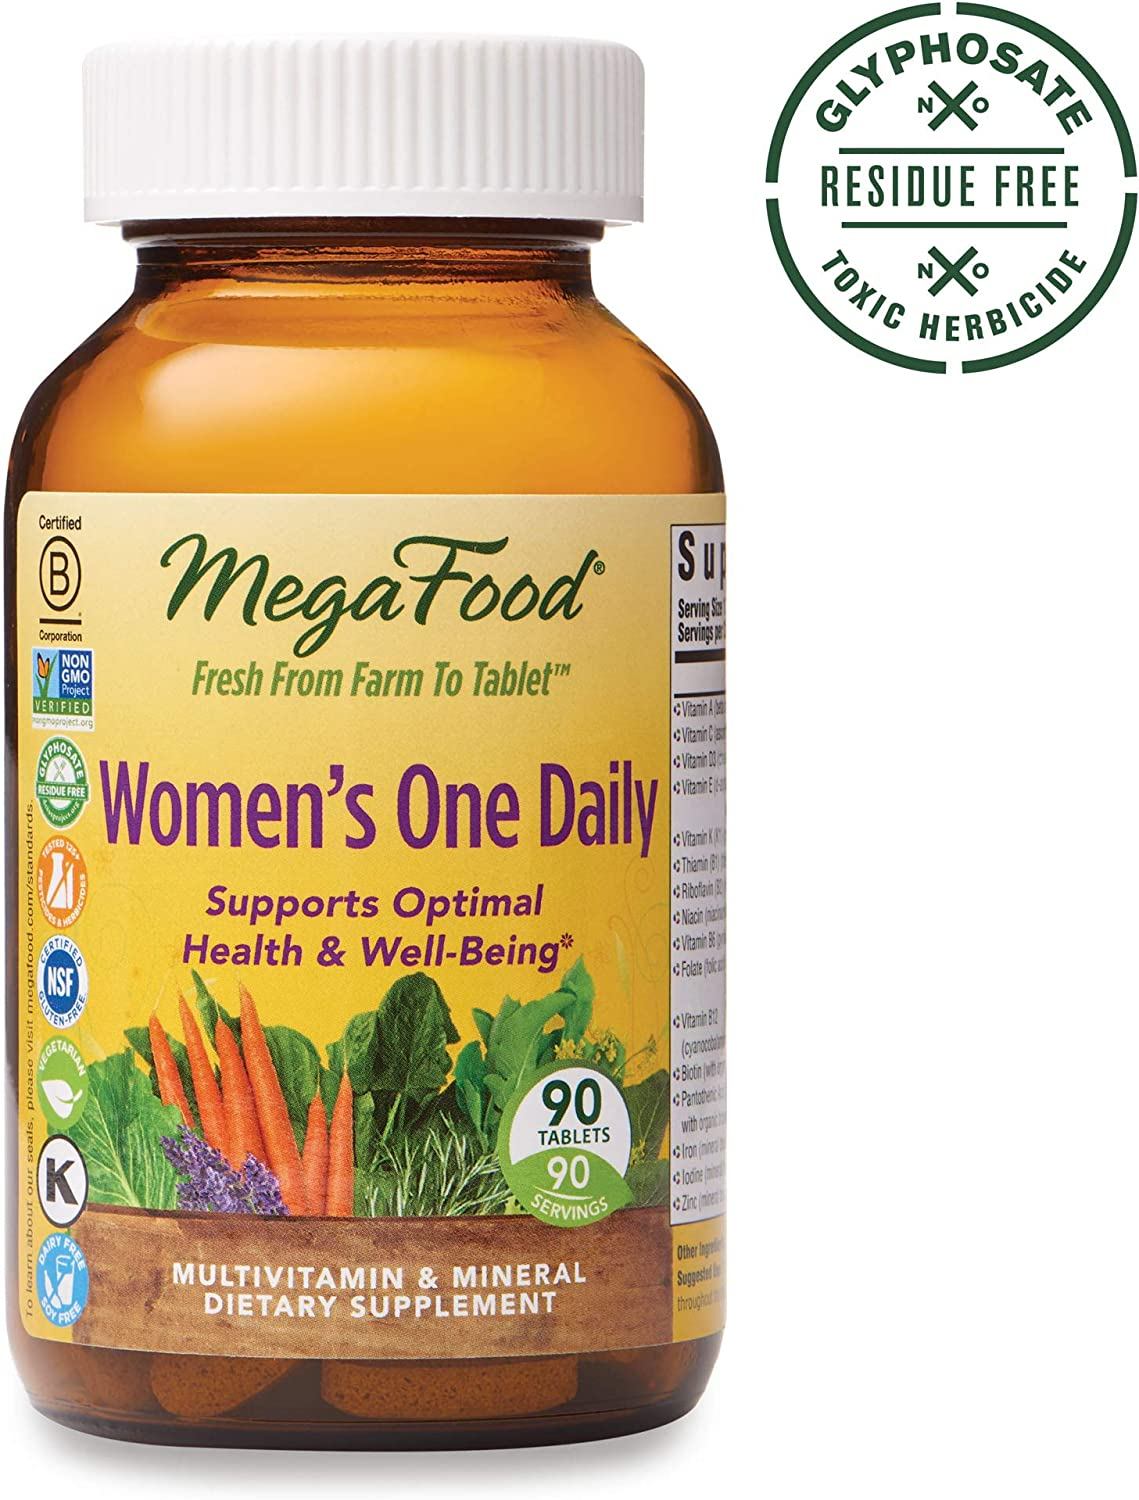 MegaFood, Women s One Daily, Daily Multivitamin and Mineral Dietary Supplement with Vitamins C, D, Folate and Iron, Non-GMO, Vegetarian, 90 Tablets 90 Servings FFP